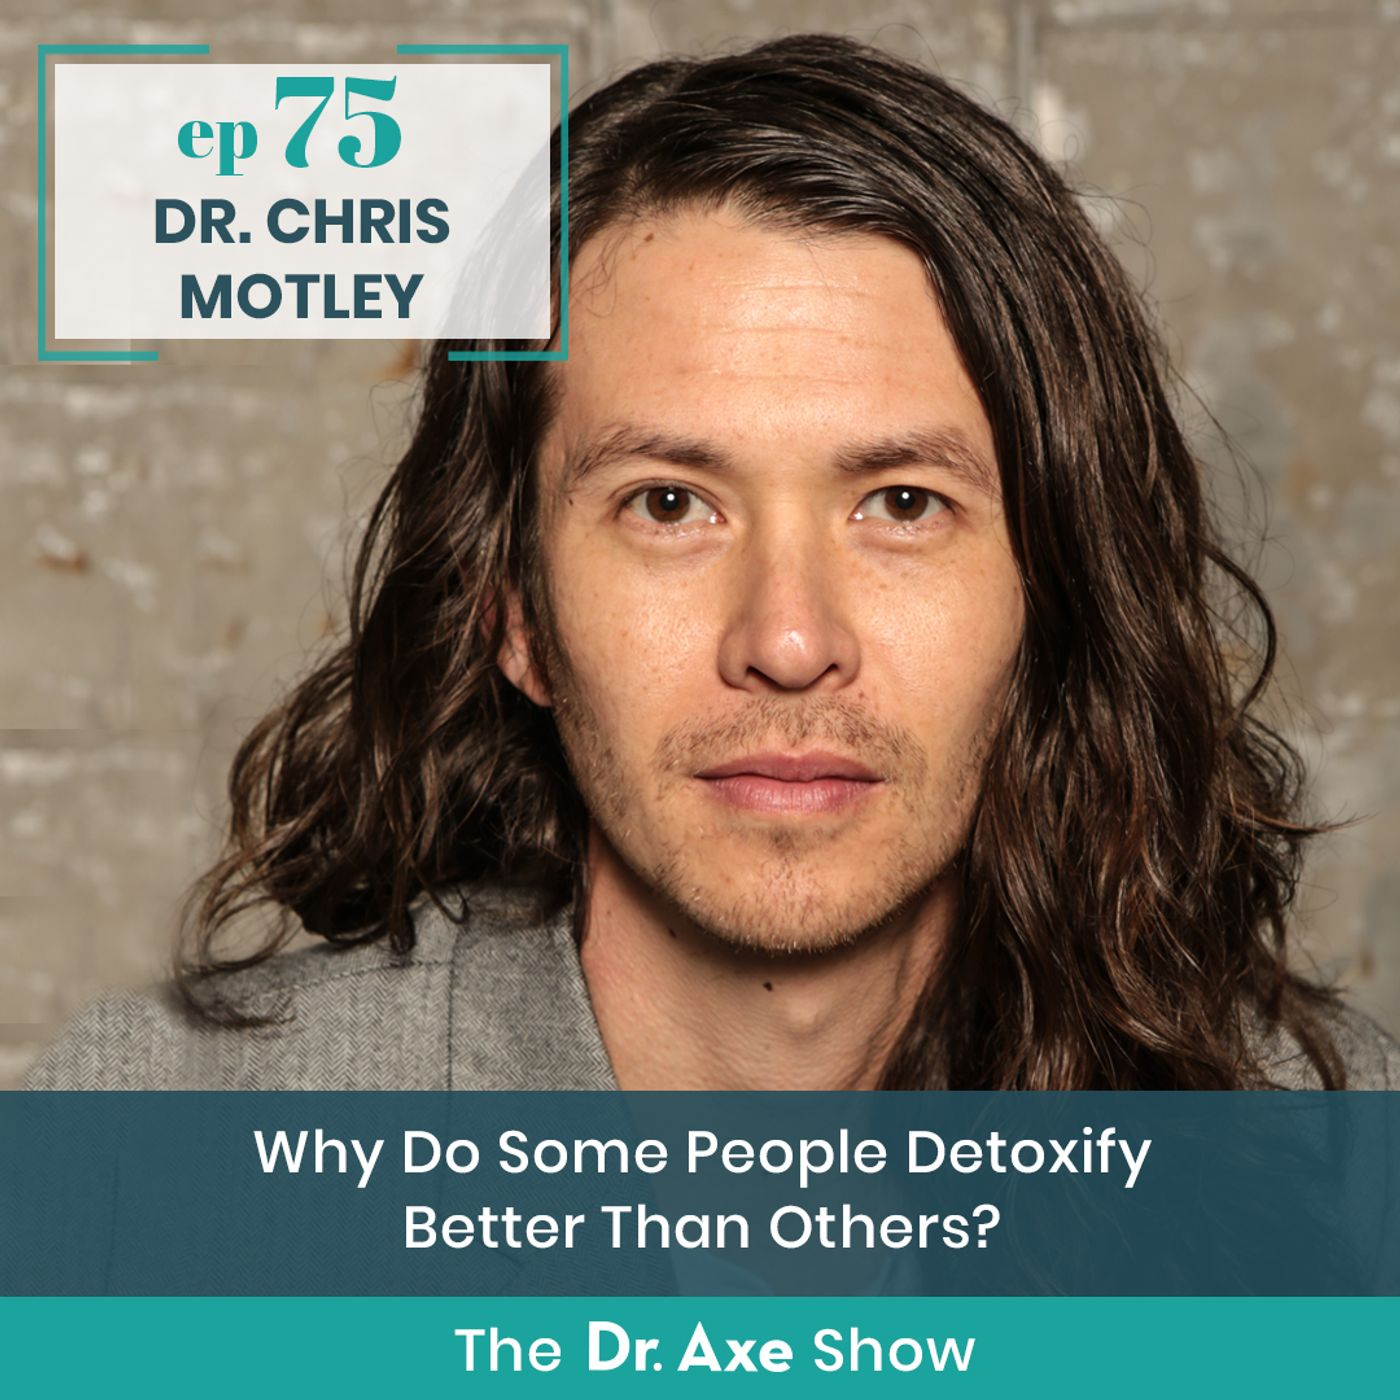 Dr. Motley: Why Do Some People Detoxify Better Than Others?